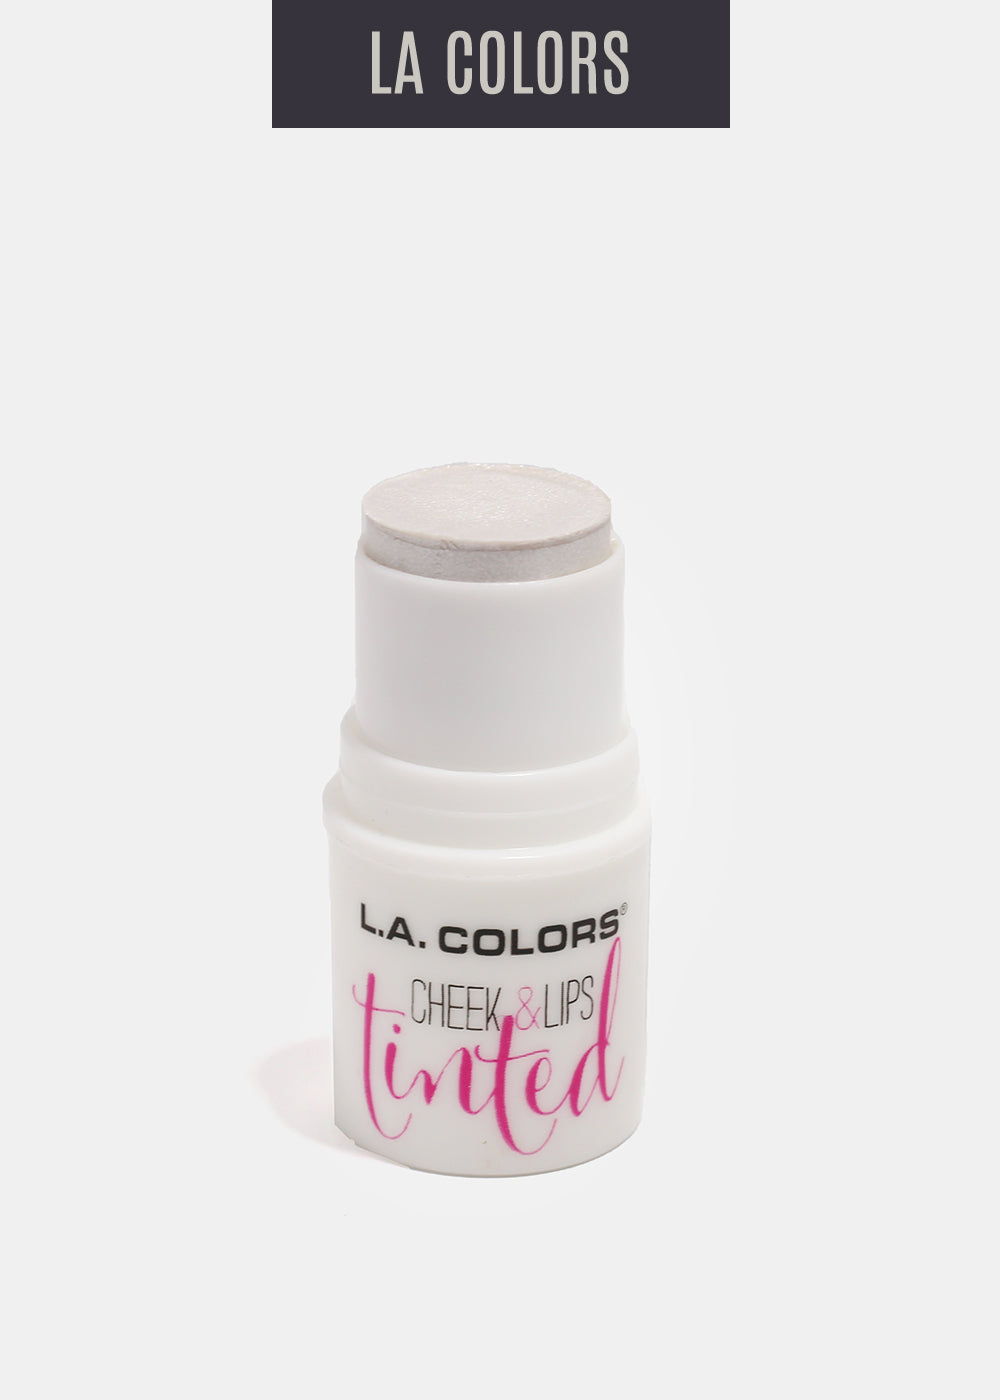 L.A. Colors - Tinted Cheek & Lips - Frosted